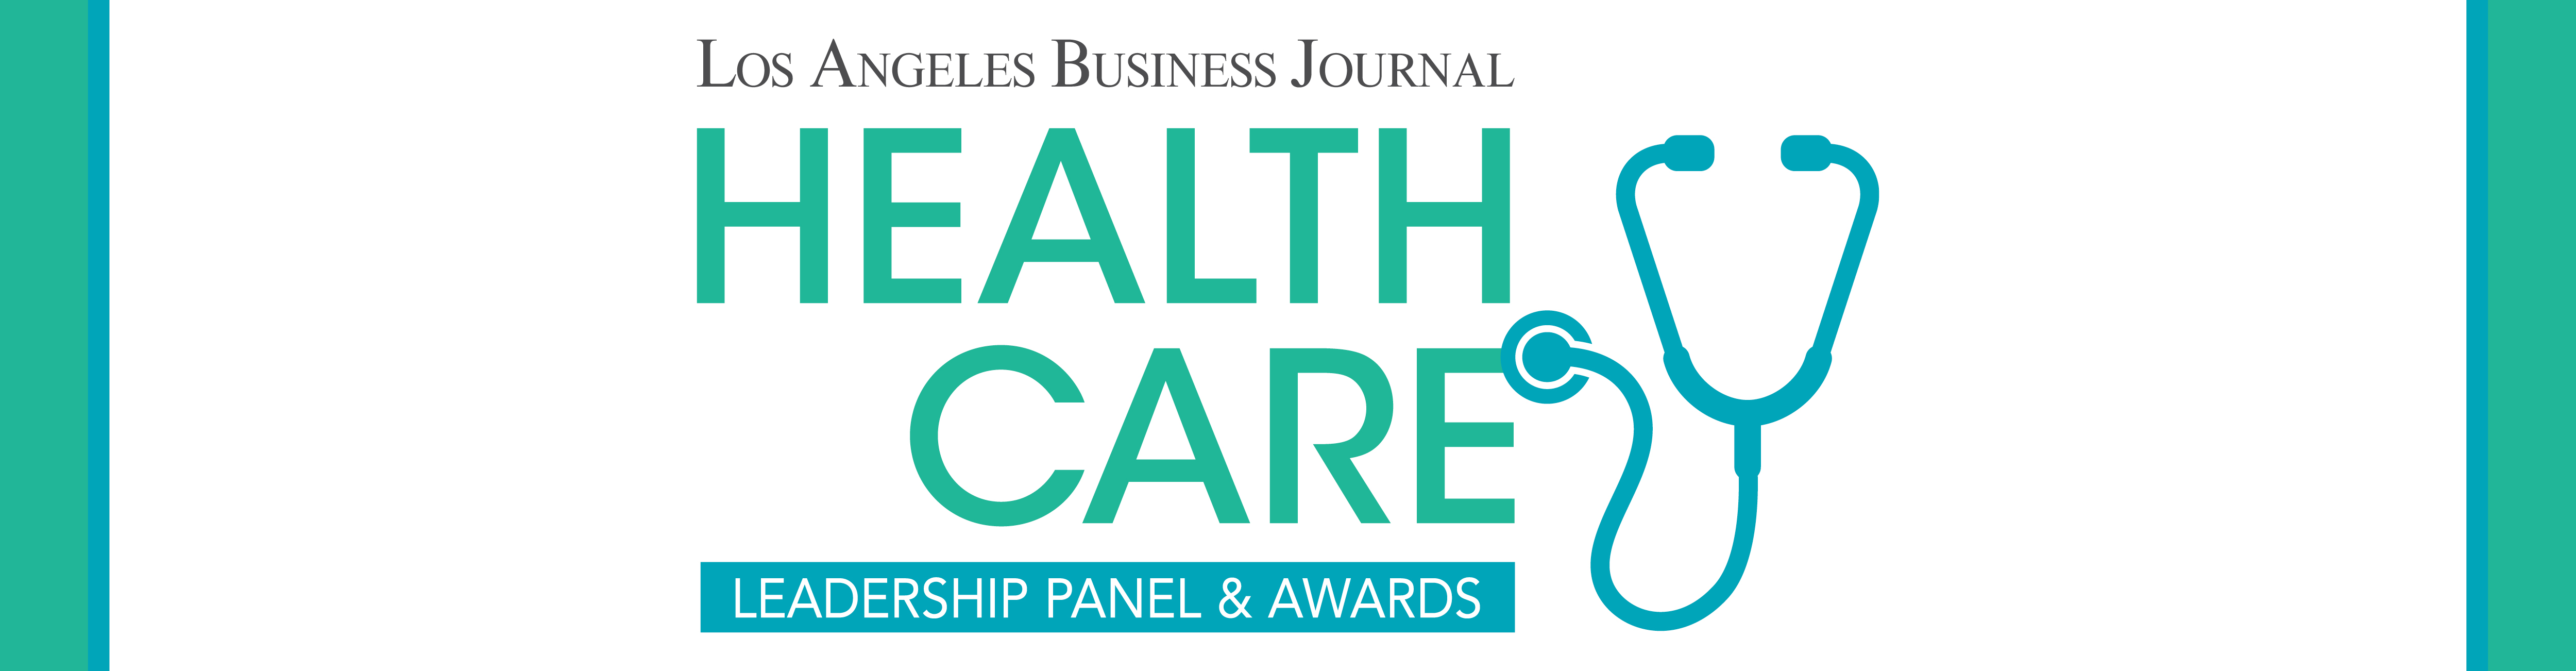 Los Angeles Business Journal Health Care Leadership Panel & Awards Event Banner